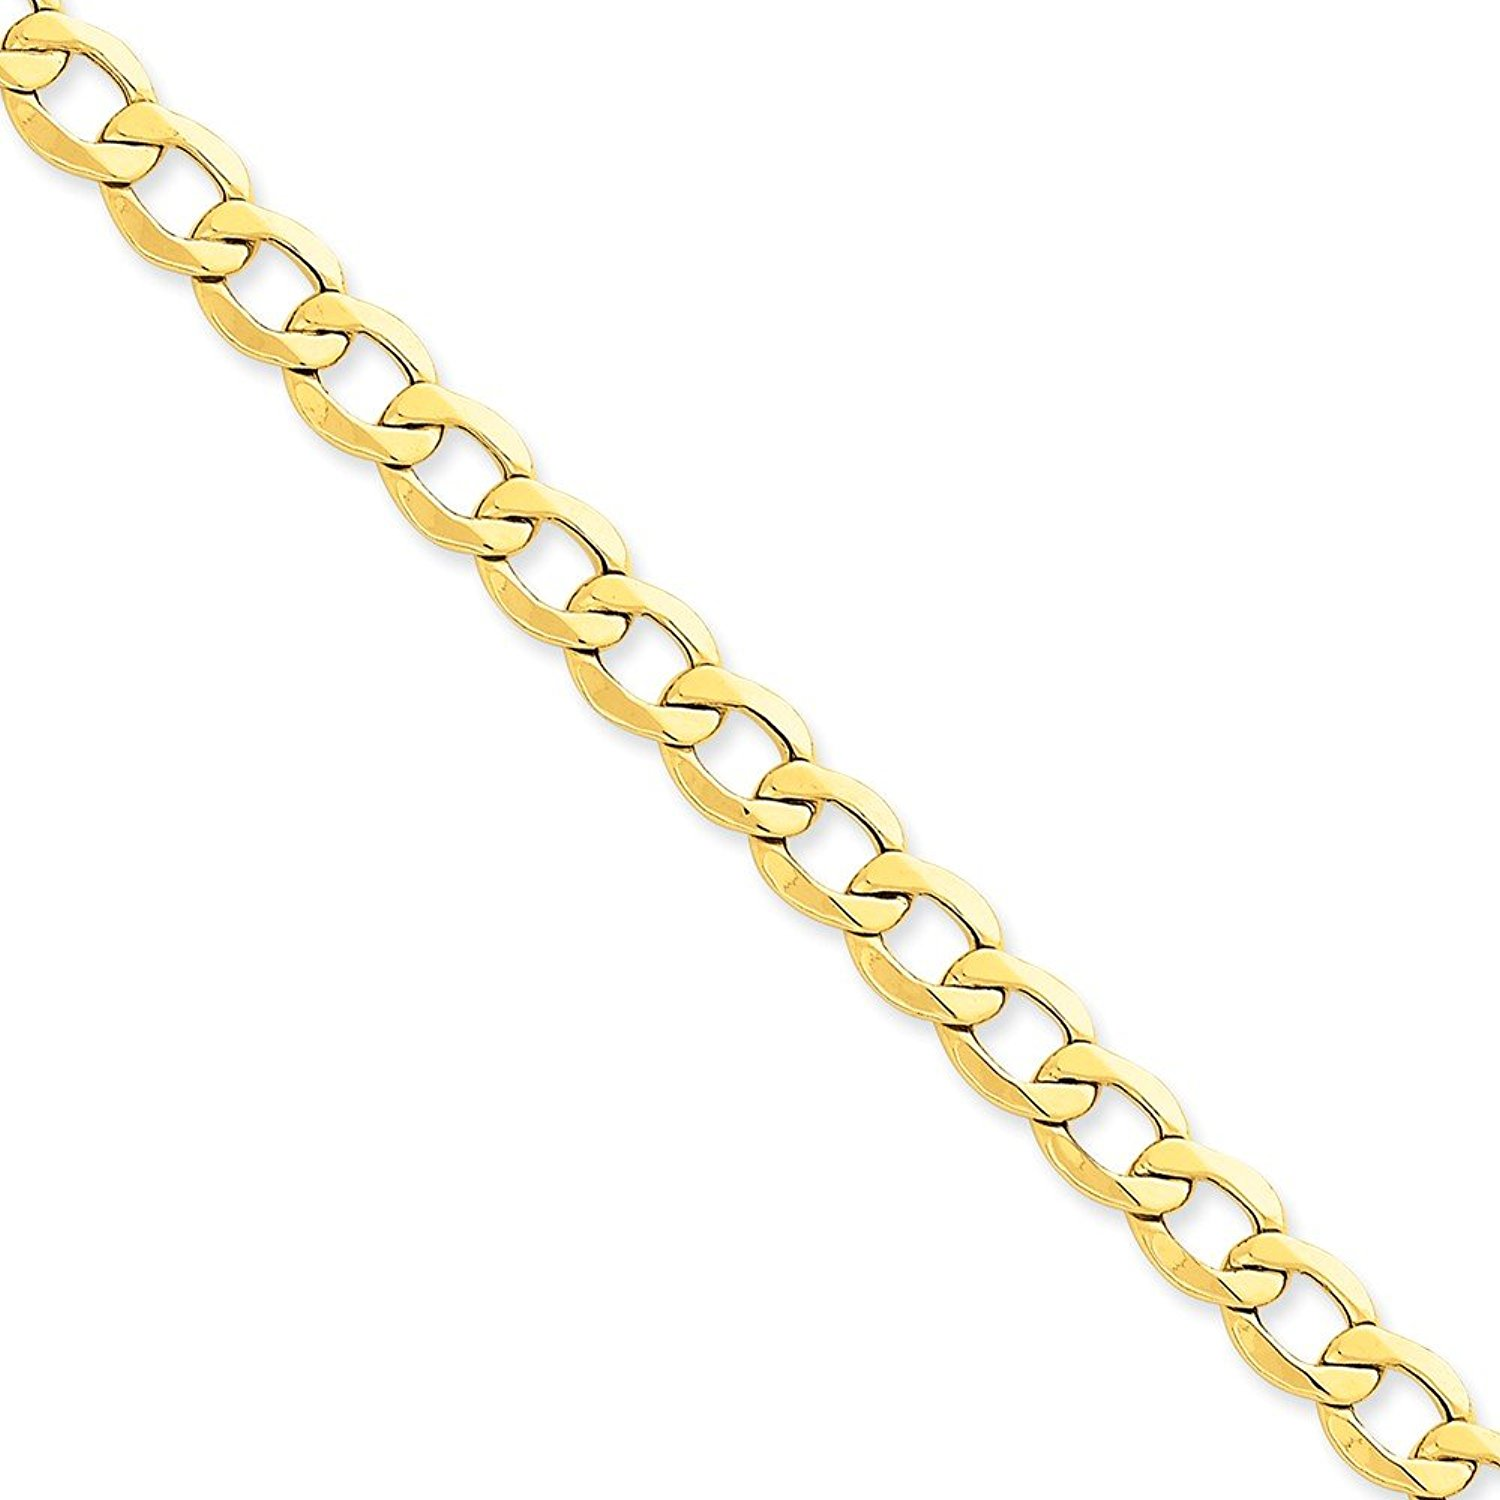 14k Yellow Gold Big Heavy 8.0mm Semi-Solid Cuban Curb Link Chain Necklace - with Secure Lobster Lock Clasp